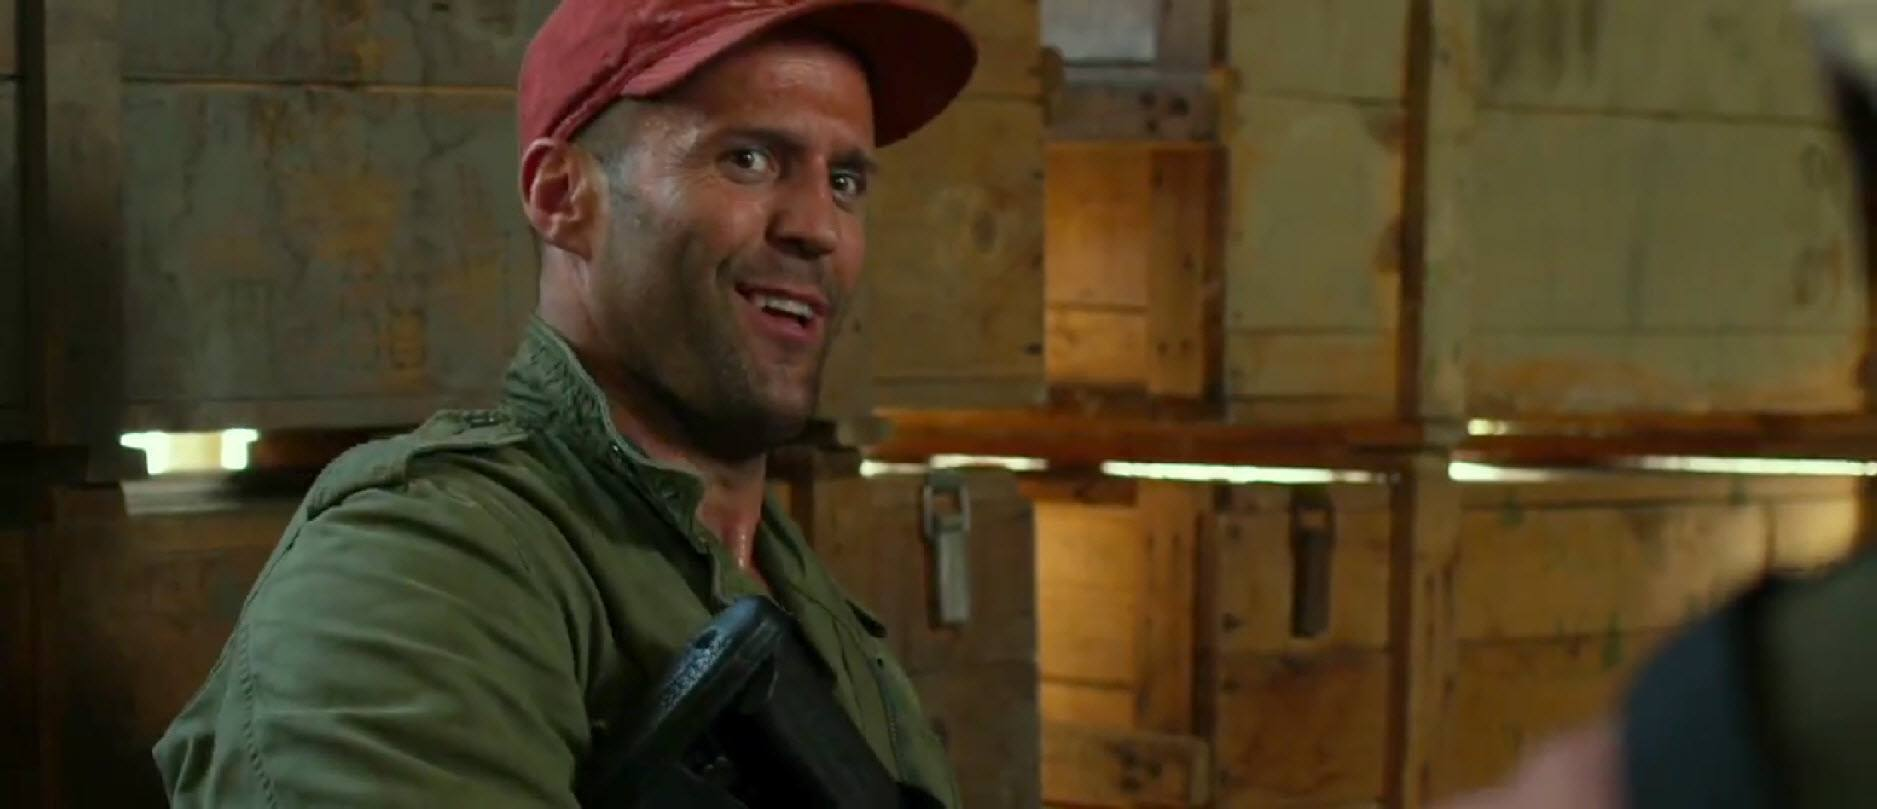 jason statham smiling bulge in expendables 3 images